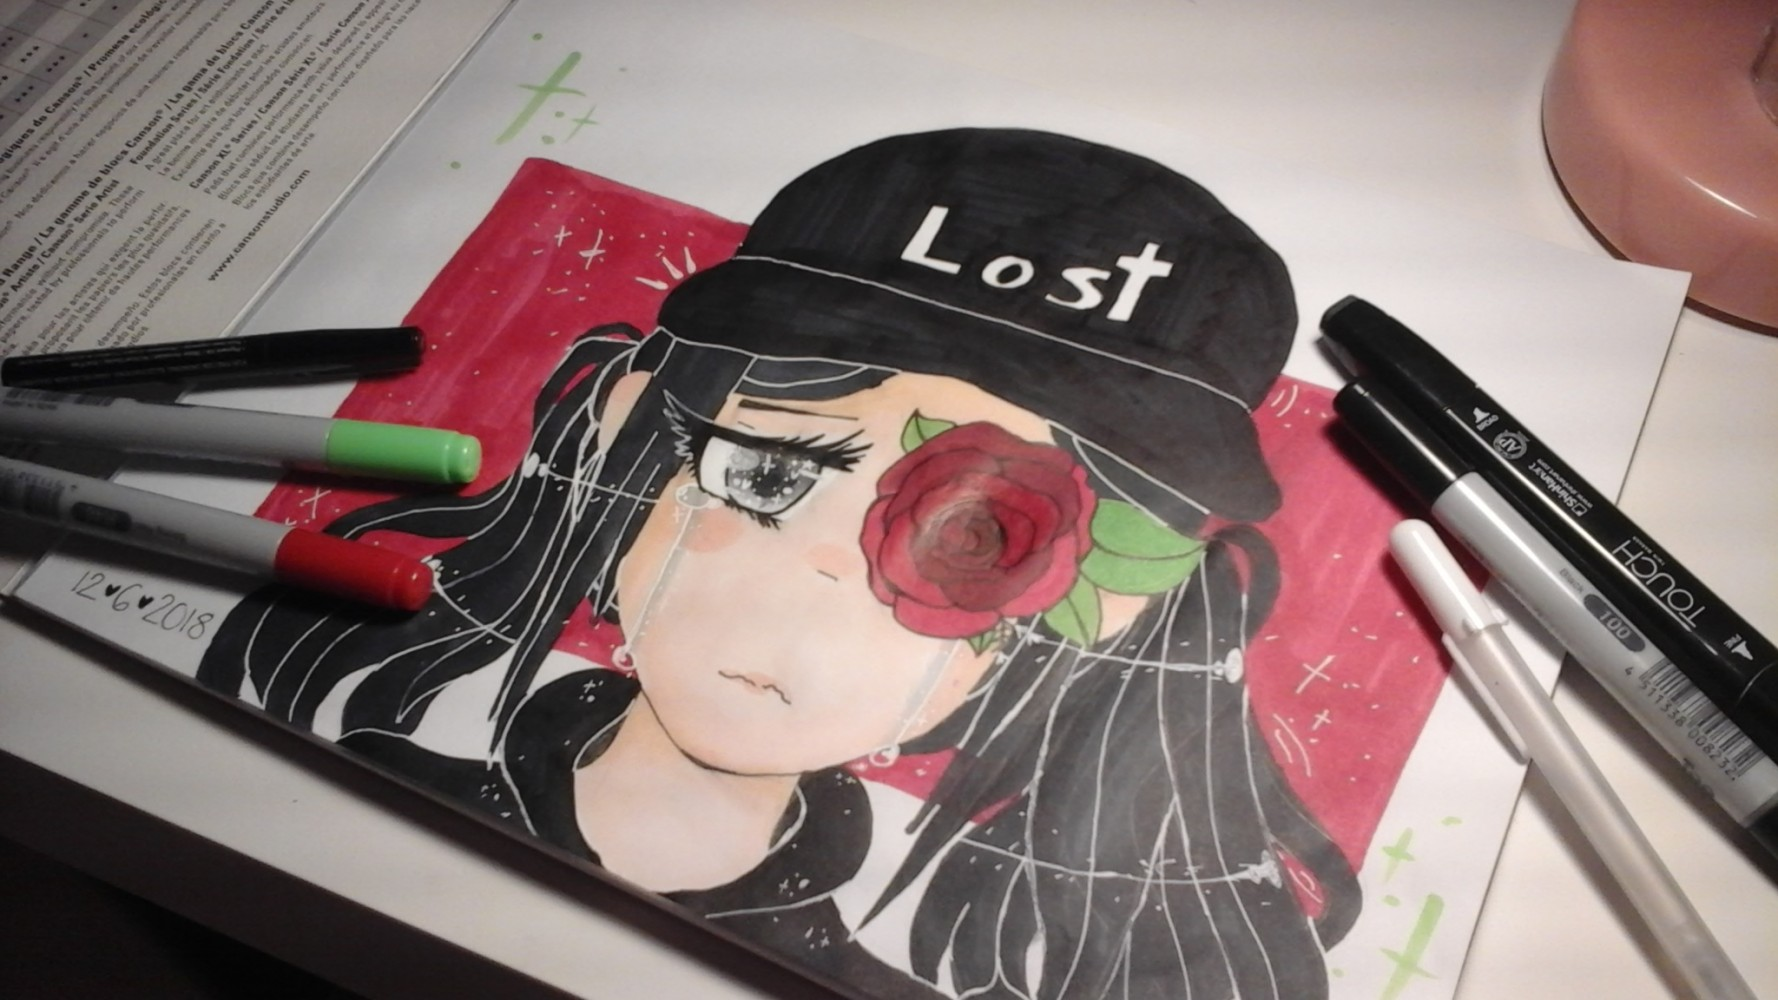 Lost by Minnielb